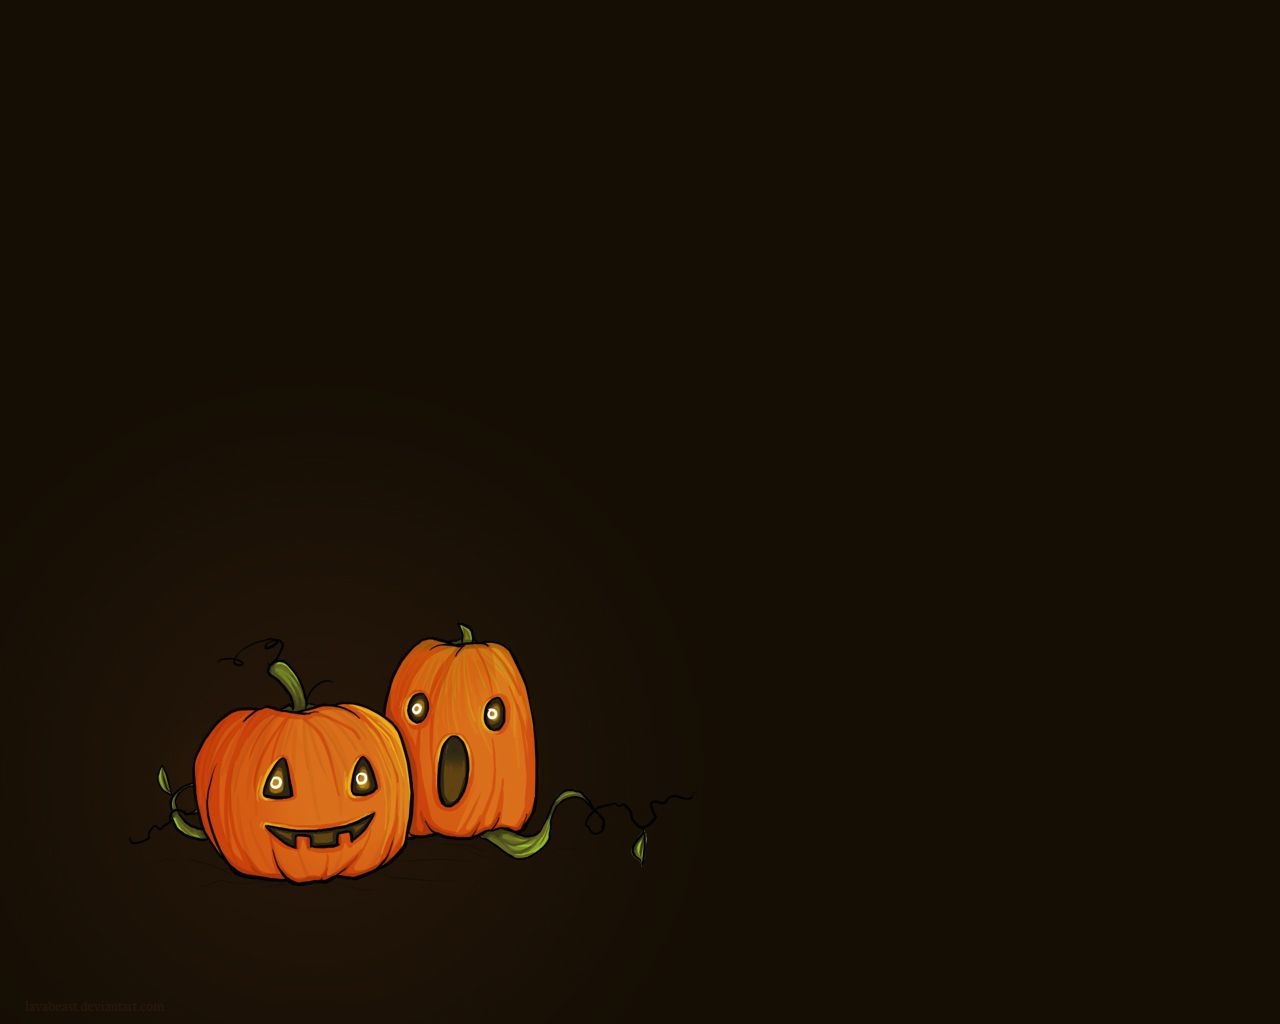 Download 50 Cute and Happy Halloween Wallpapers HD for Free ...